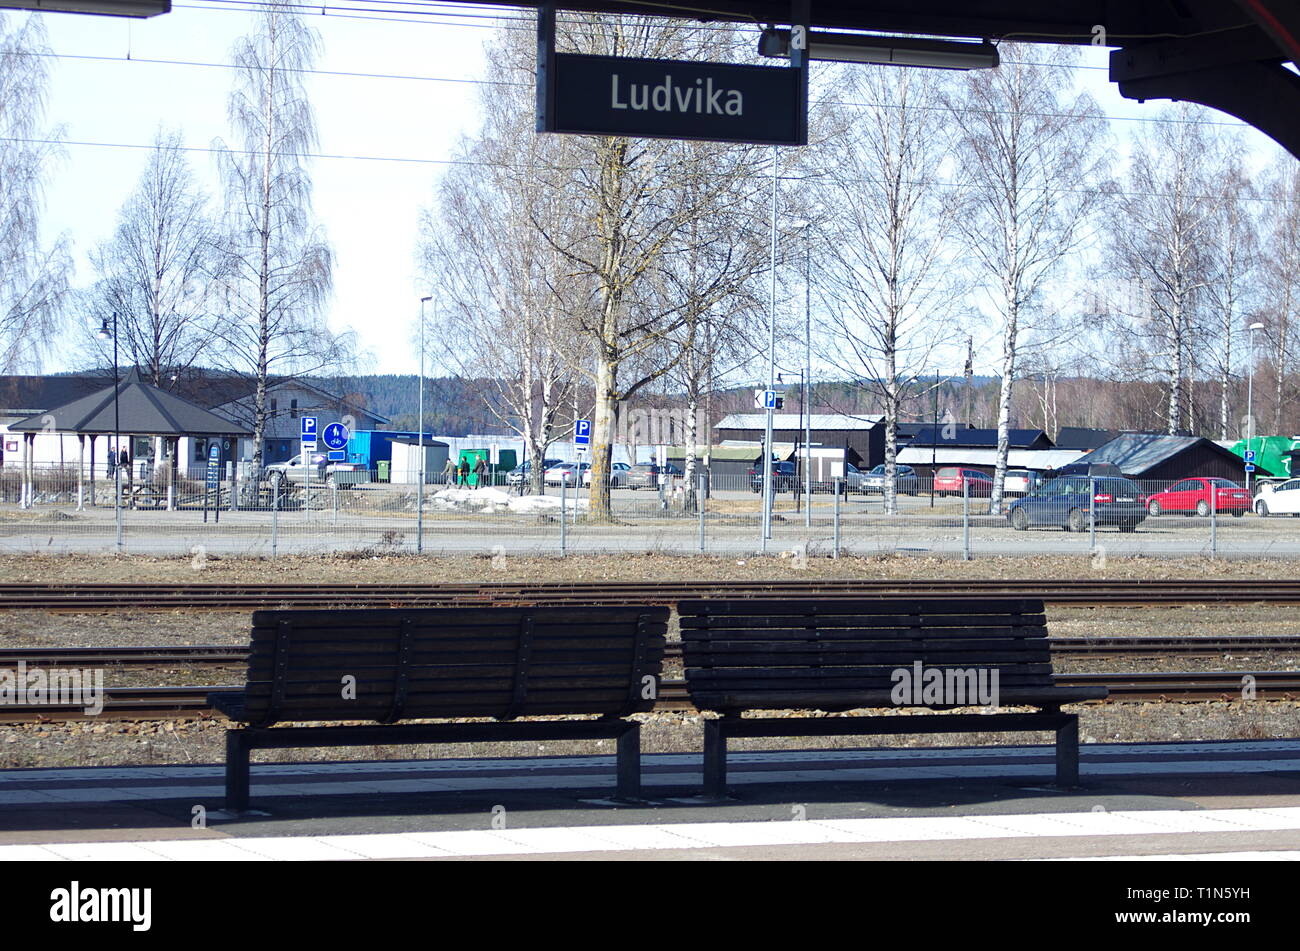 The town of Ludvika in Dalarna on a sunny spring day - Stock Image